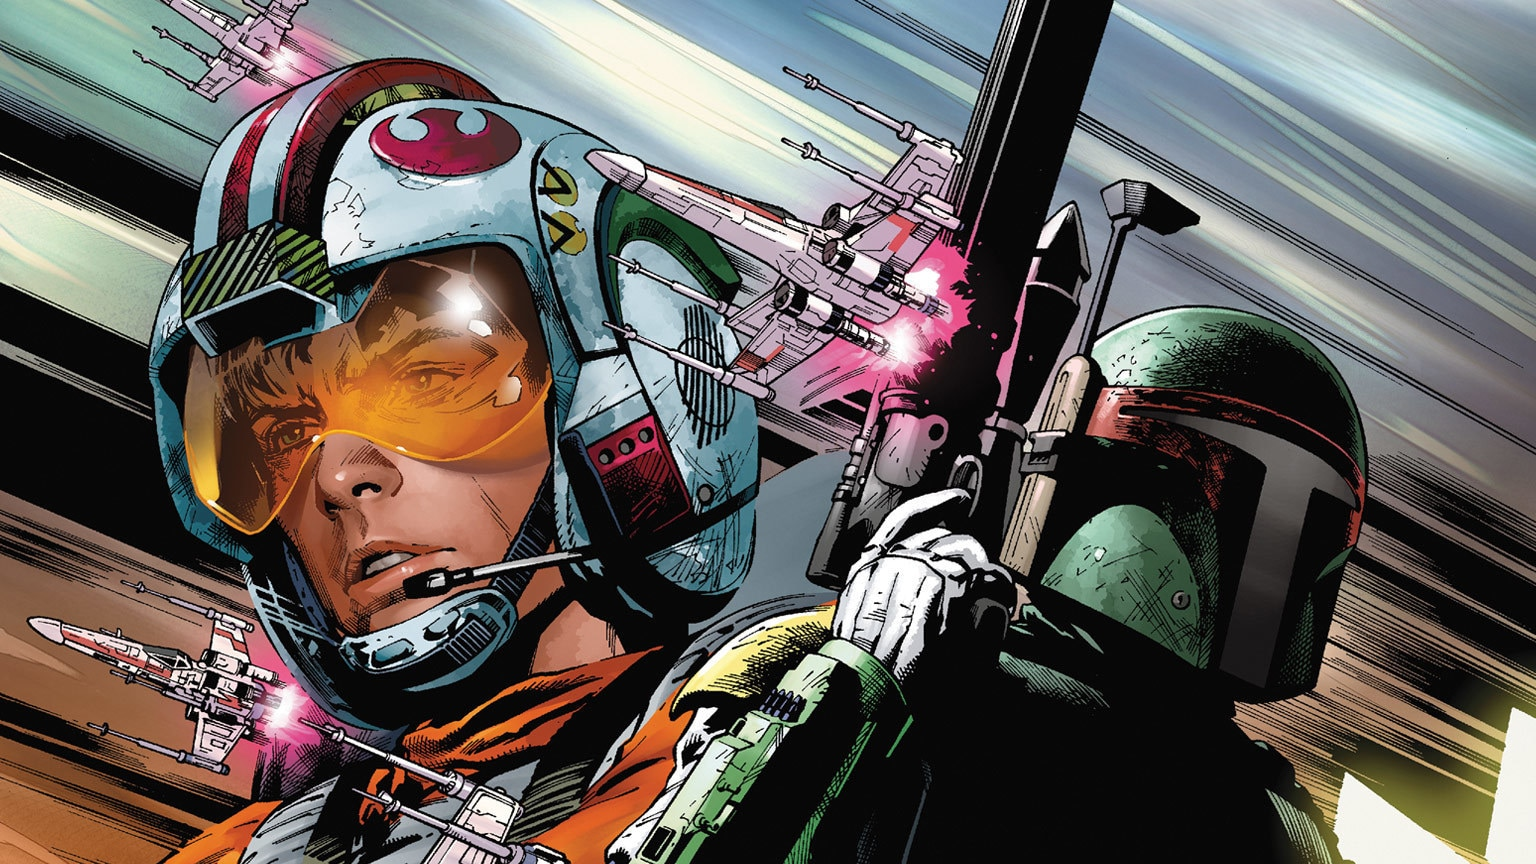 Luke Skywalker Joins Starlight Squadron in Marvel's Star Wars #15 – Exclusive Preview